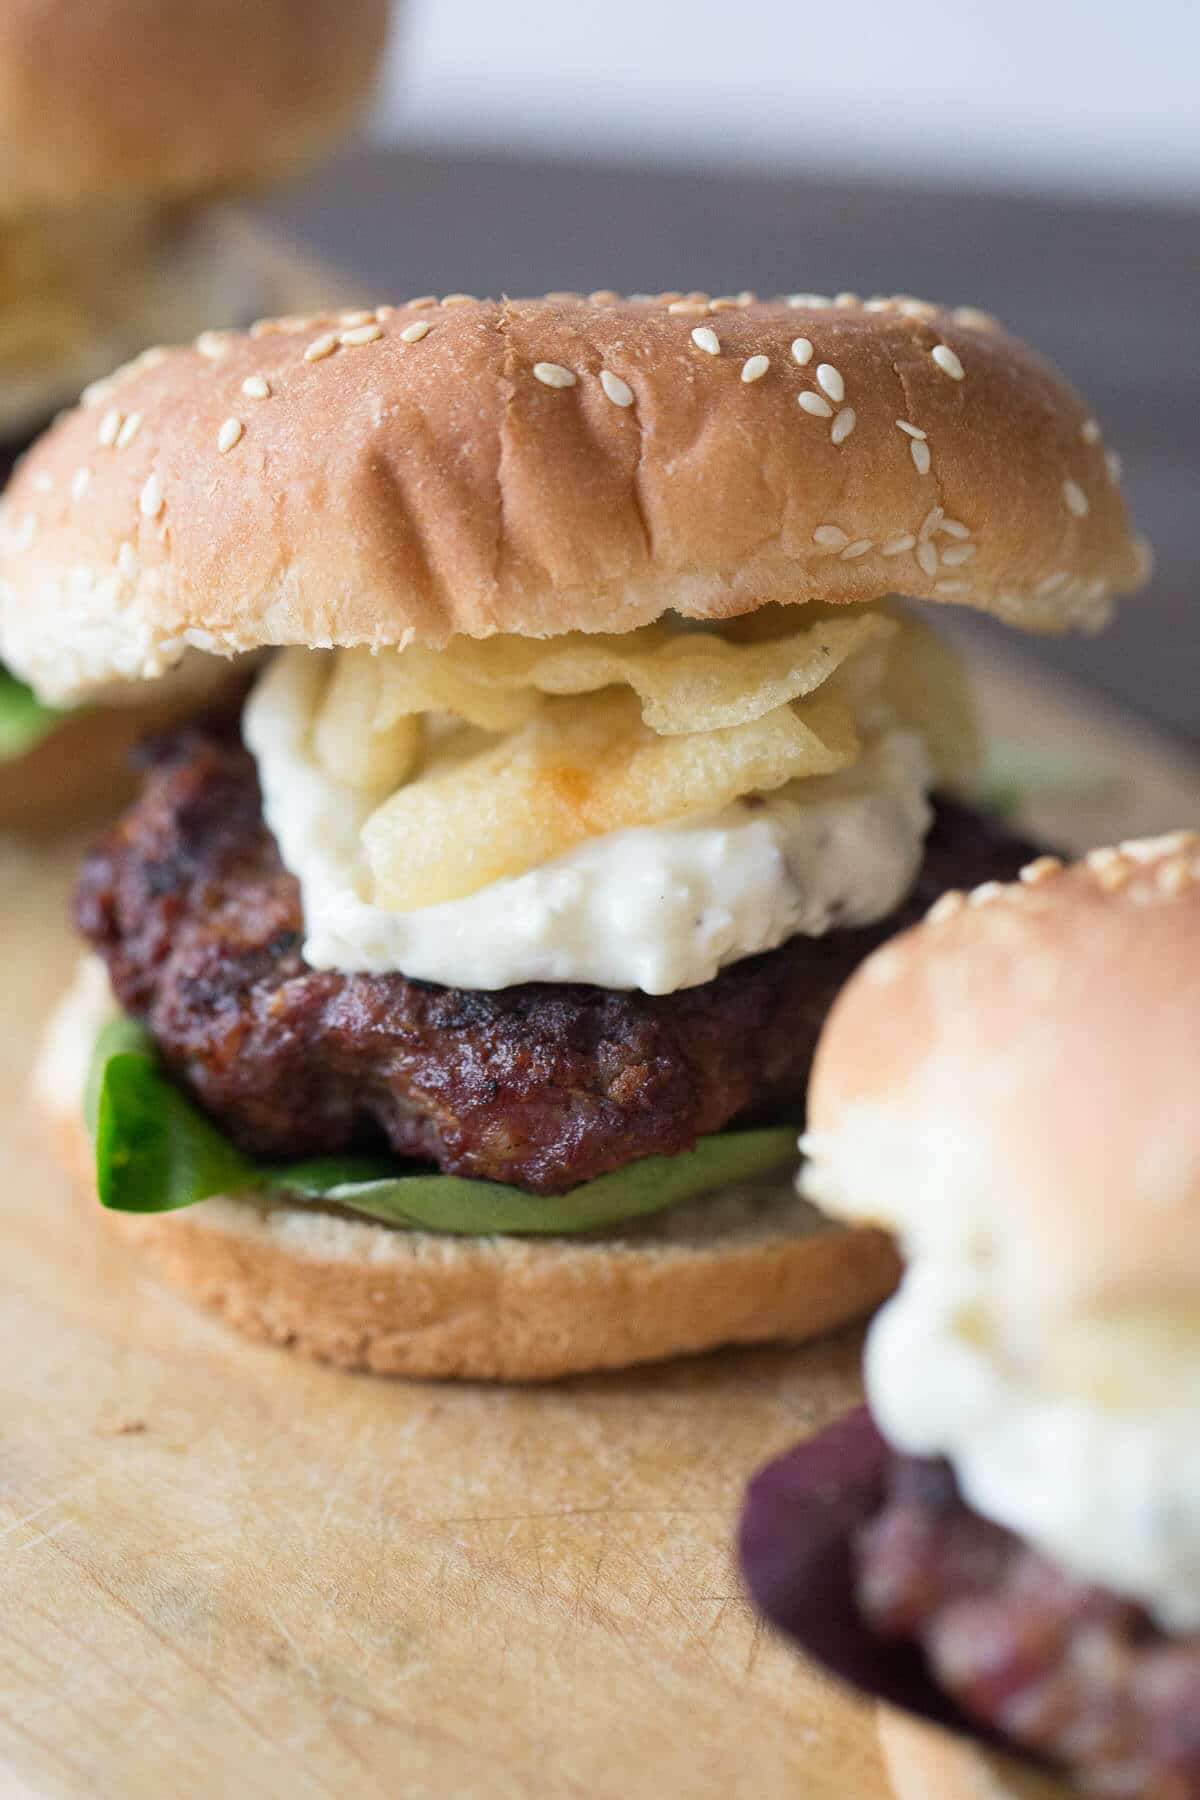 These black and blue burger is thick and juicy and holds so many unexpected flavors. Spicy seasoning, creamy remoulade and crunchy chips make this burger outstanding!